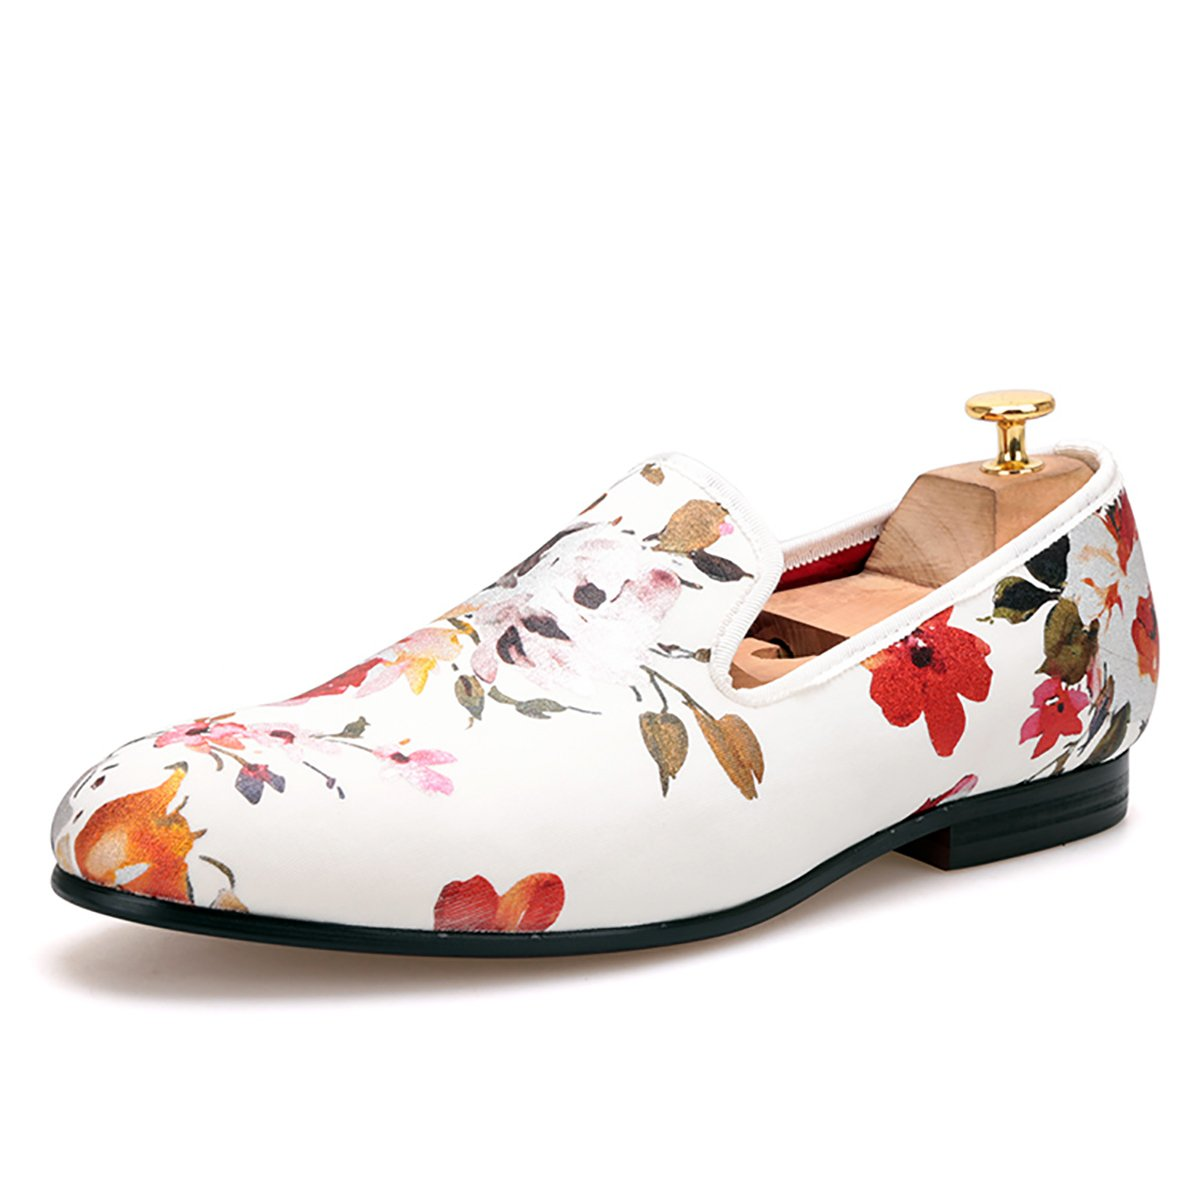 HI&HANN White Color Print Gold flower China Style Men's Dress Loafer Party and wedding Porm Men Shoes Smoking Slipper-10-Multi